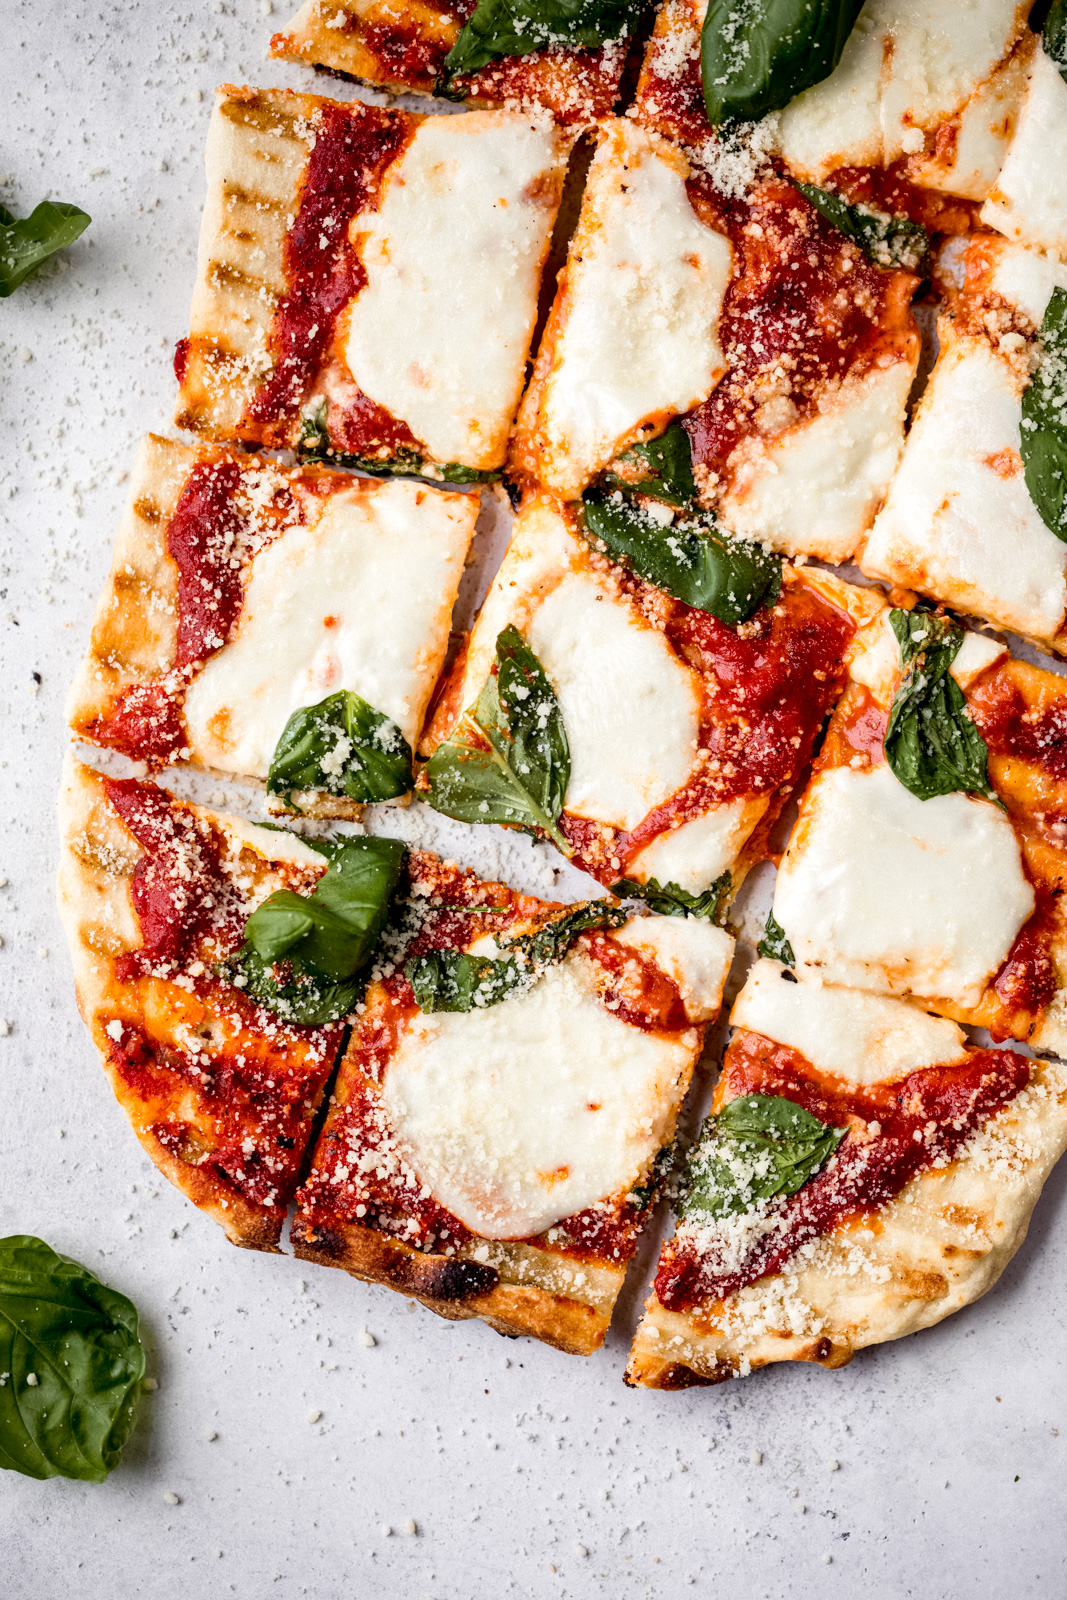 The Best Grilled Pizza Recipe Yum Grilled pizza